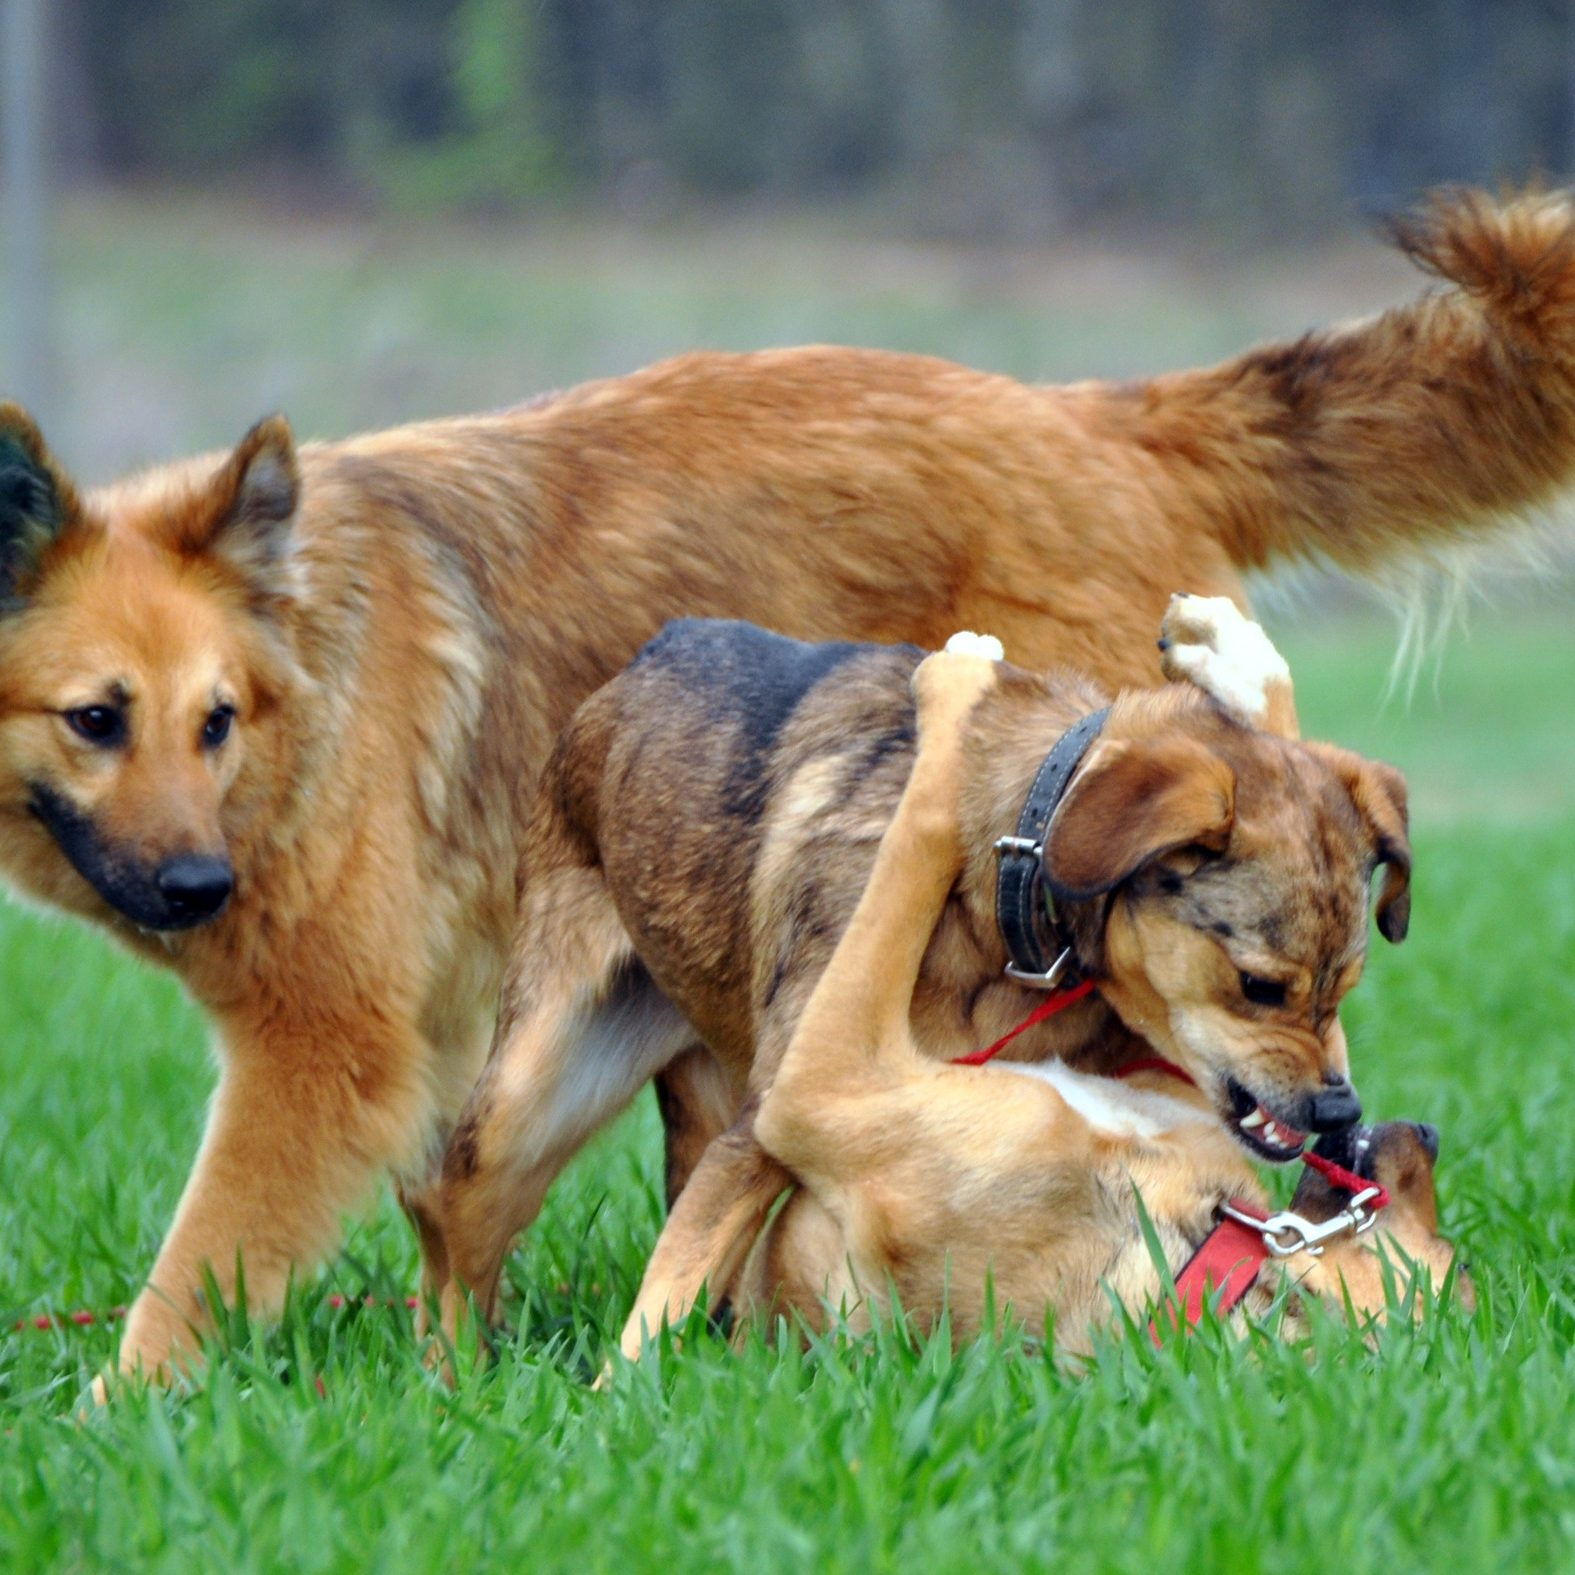 dogs-61683